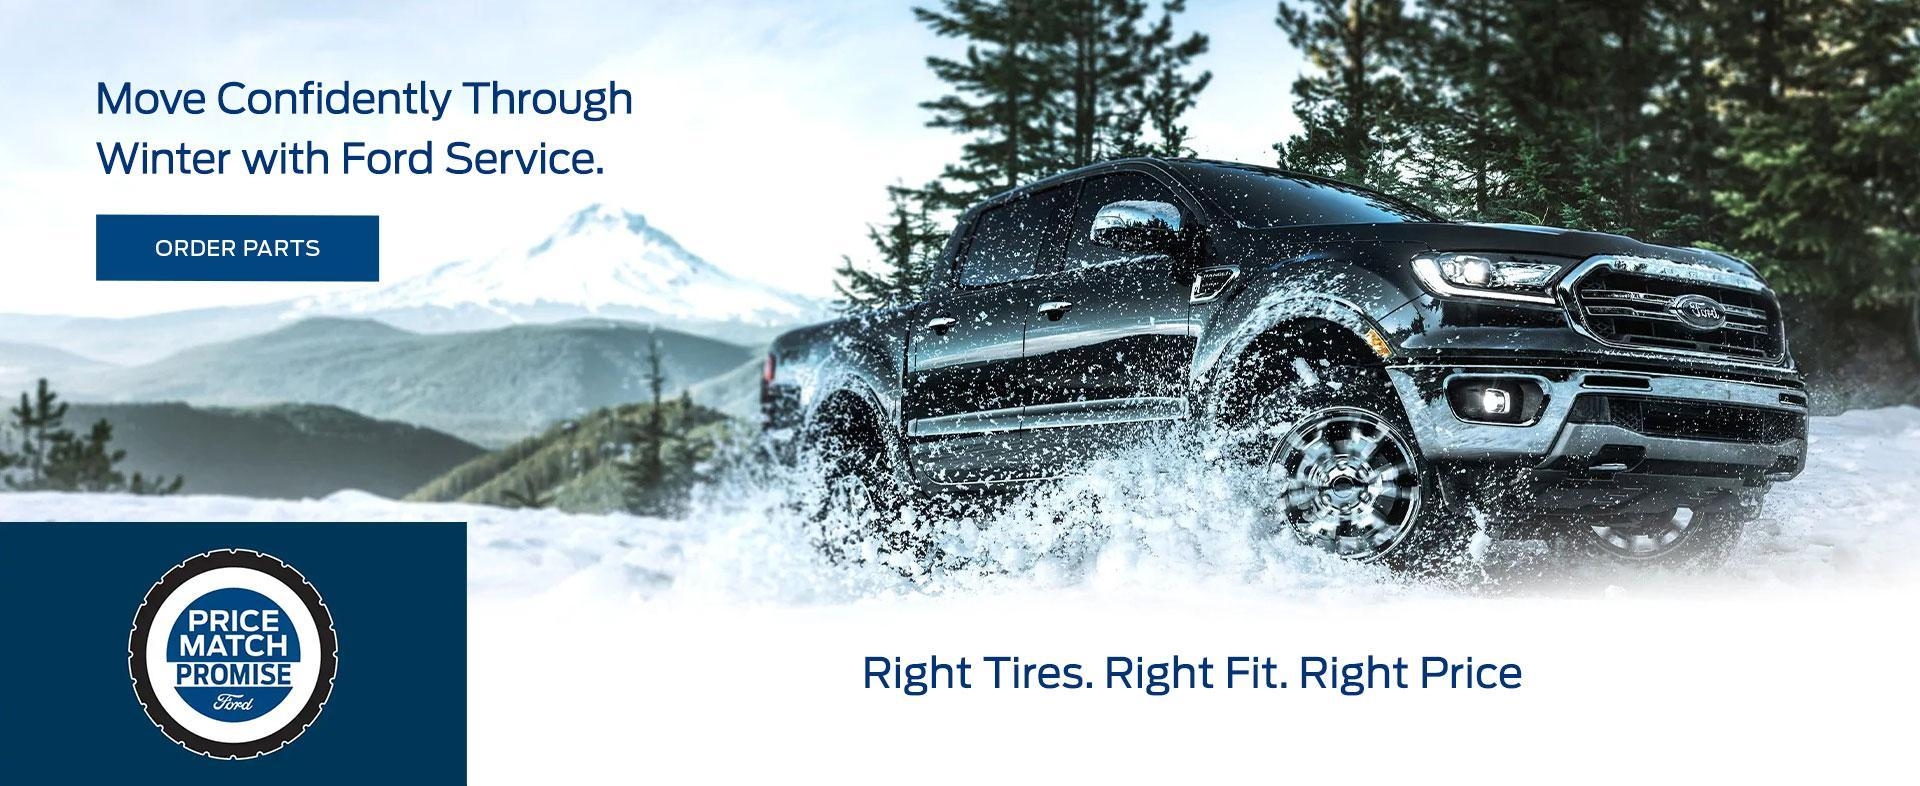 The Right Tires Promo Event